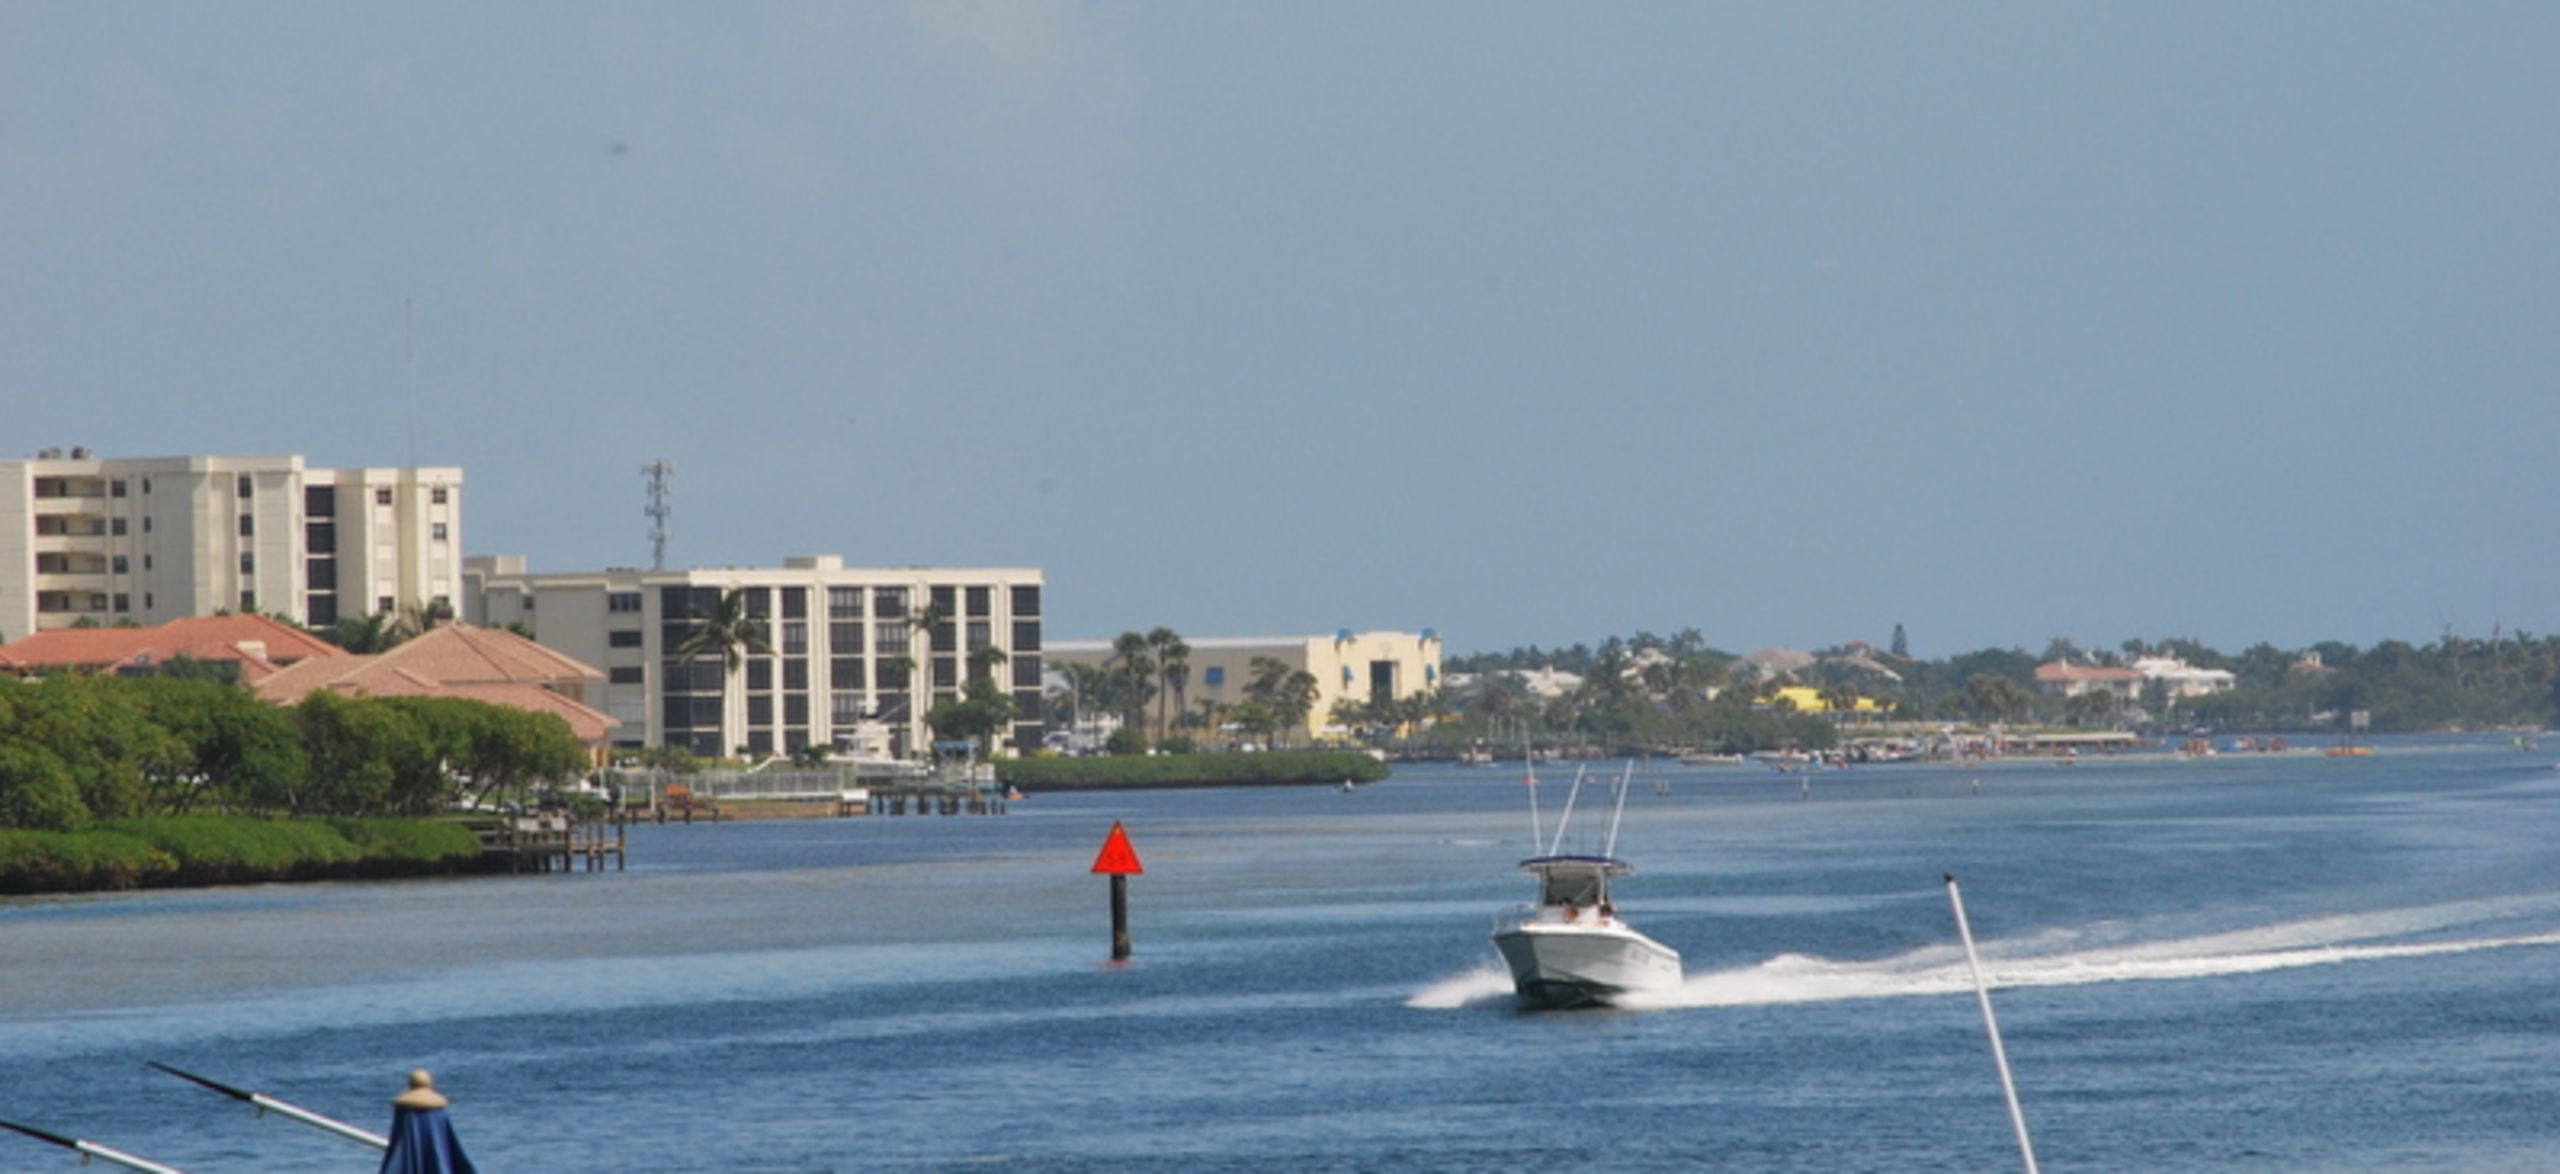 Condos with georgous views of the Intracostal